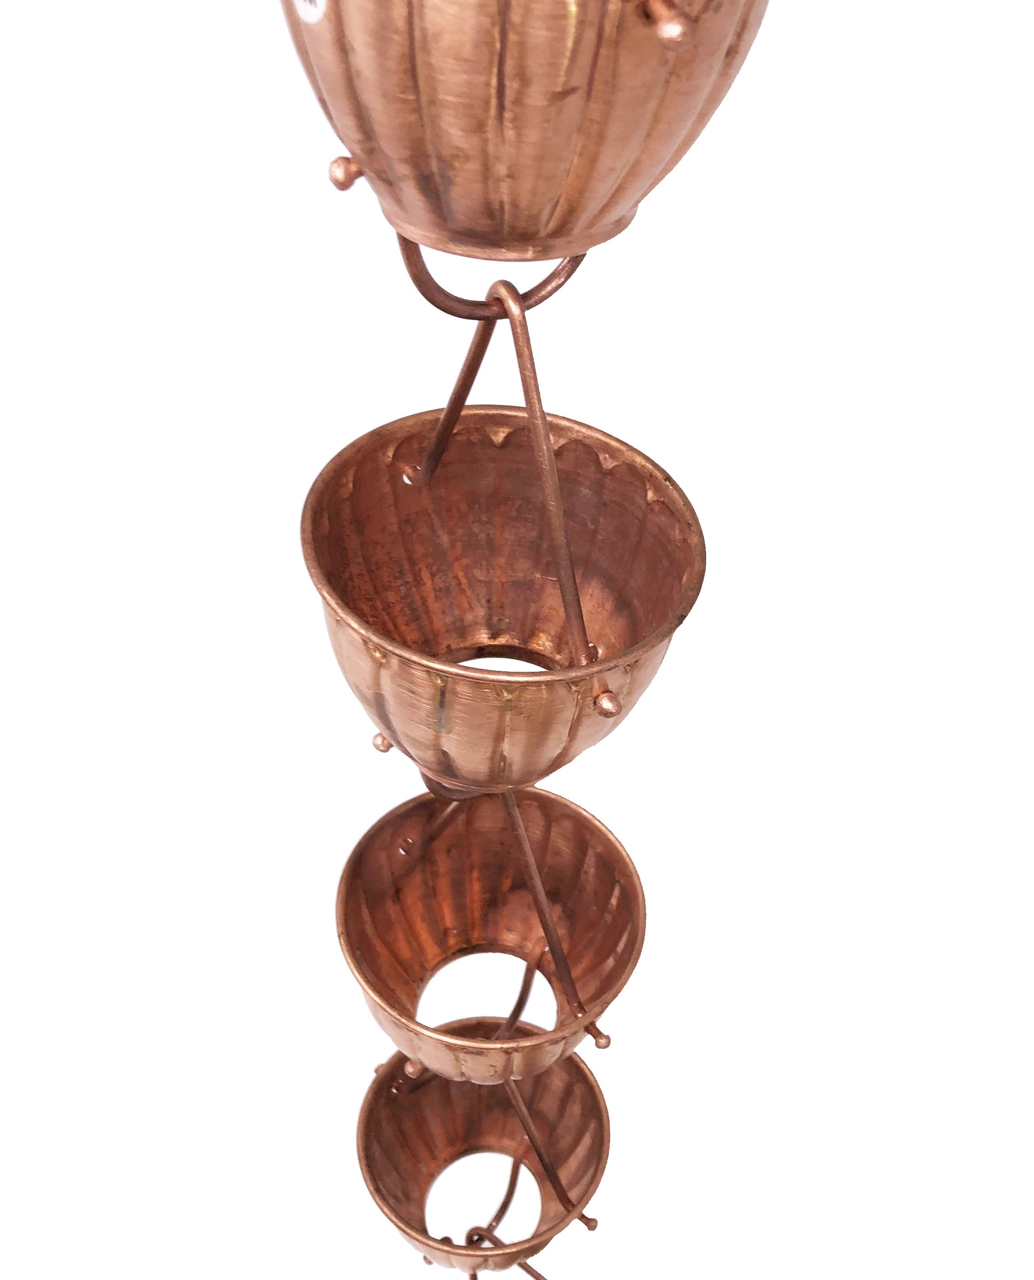 Picture of U-nitt Pure Copper Rain Chain: Fluted Ribbed Cup 8 - 1/2 ft (Whole Chain) #5555